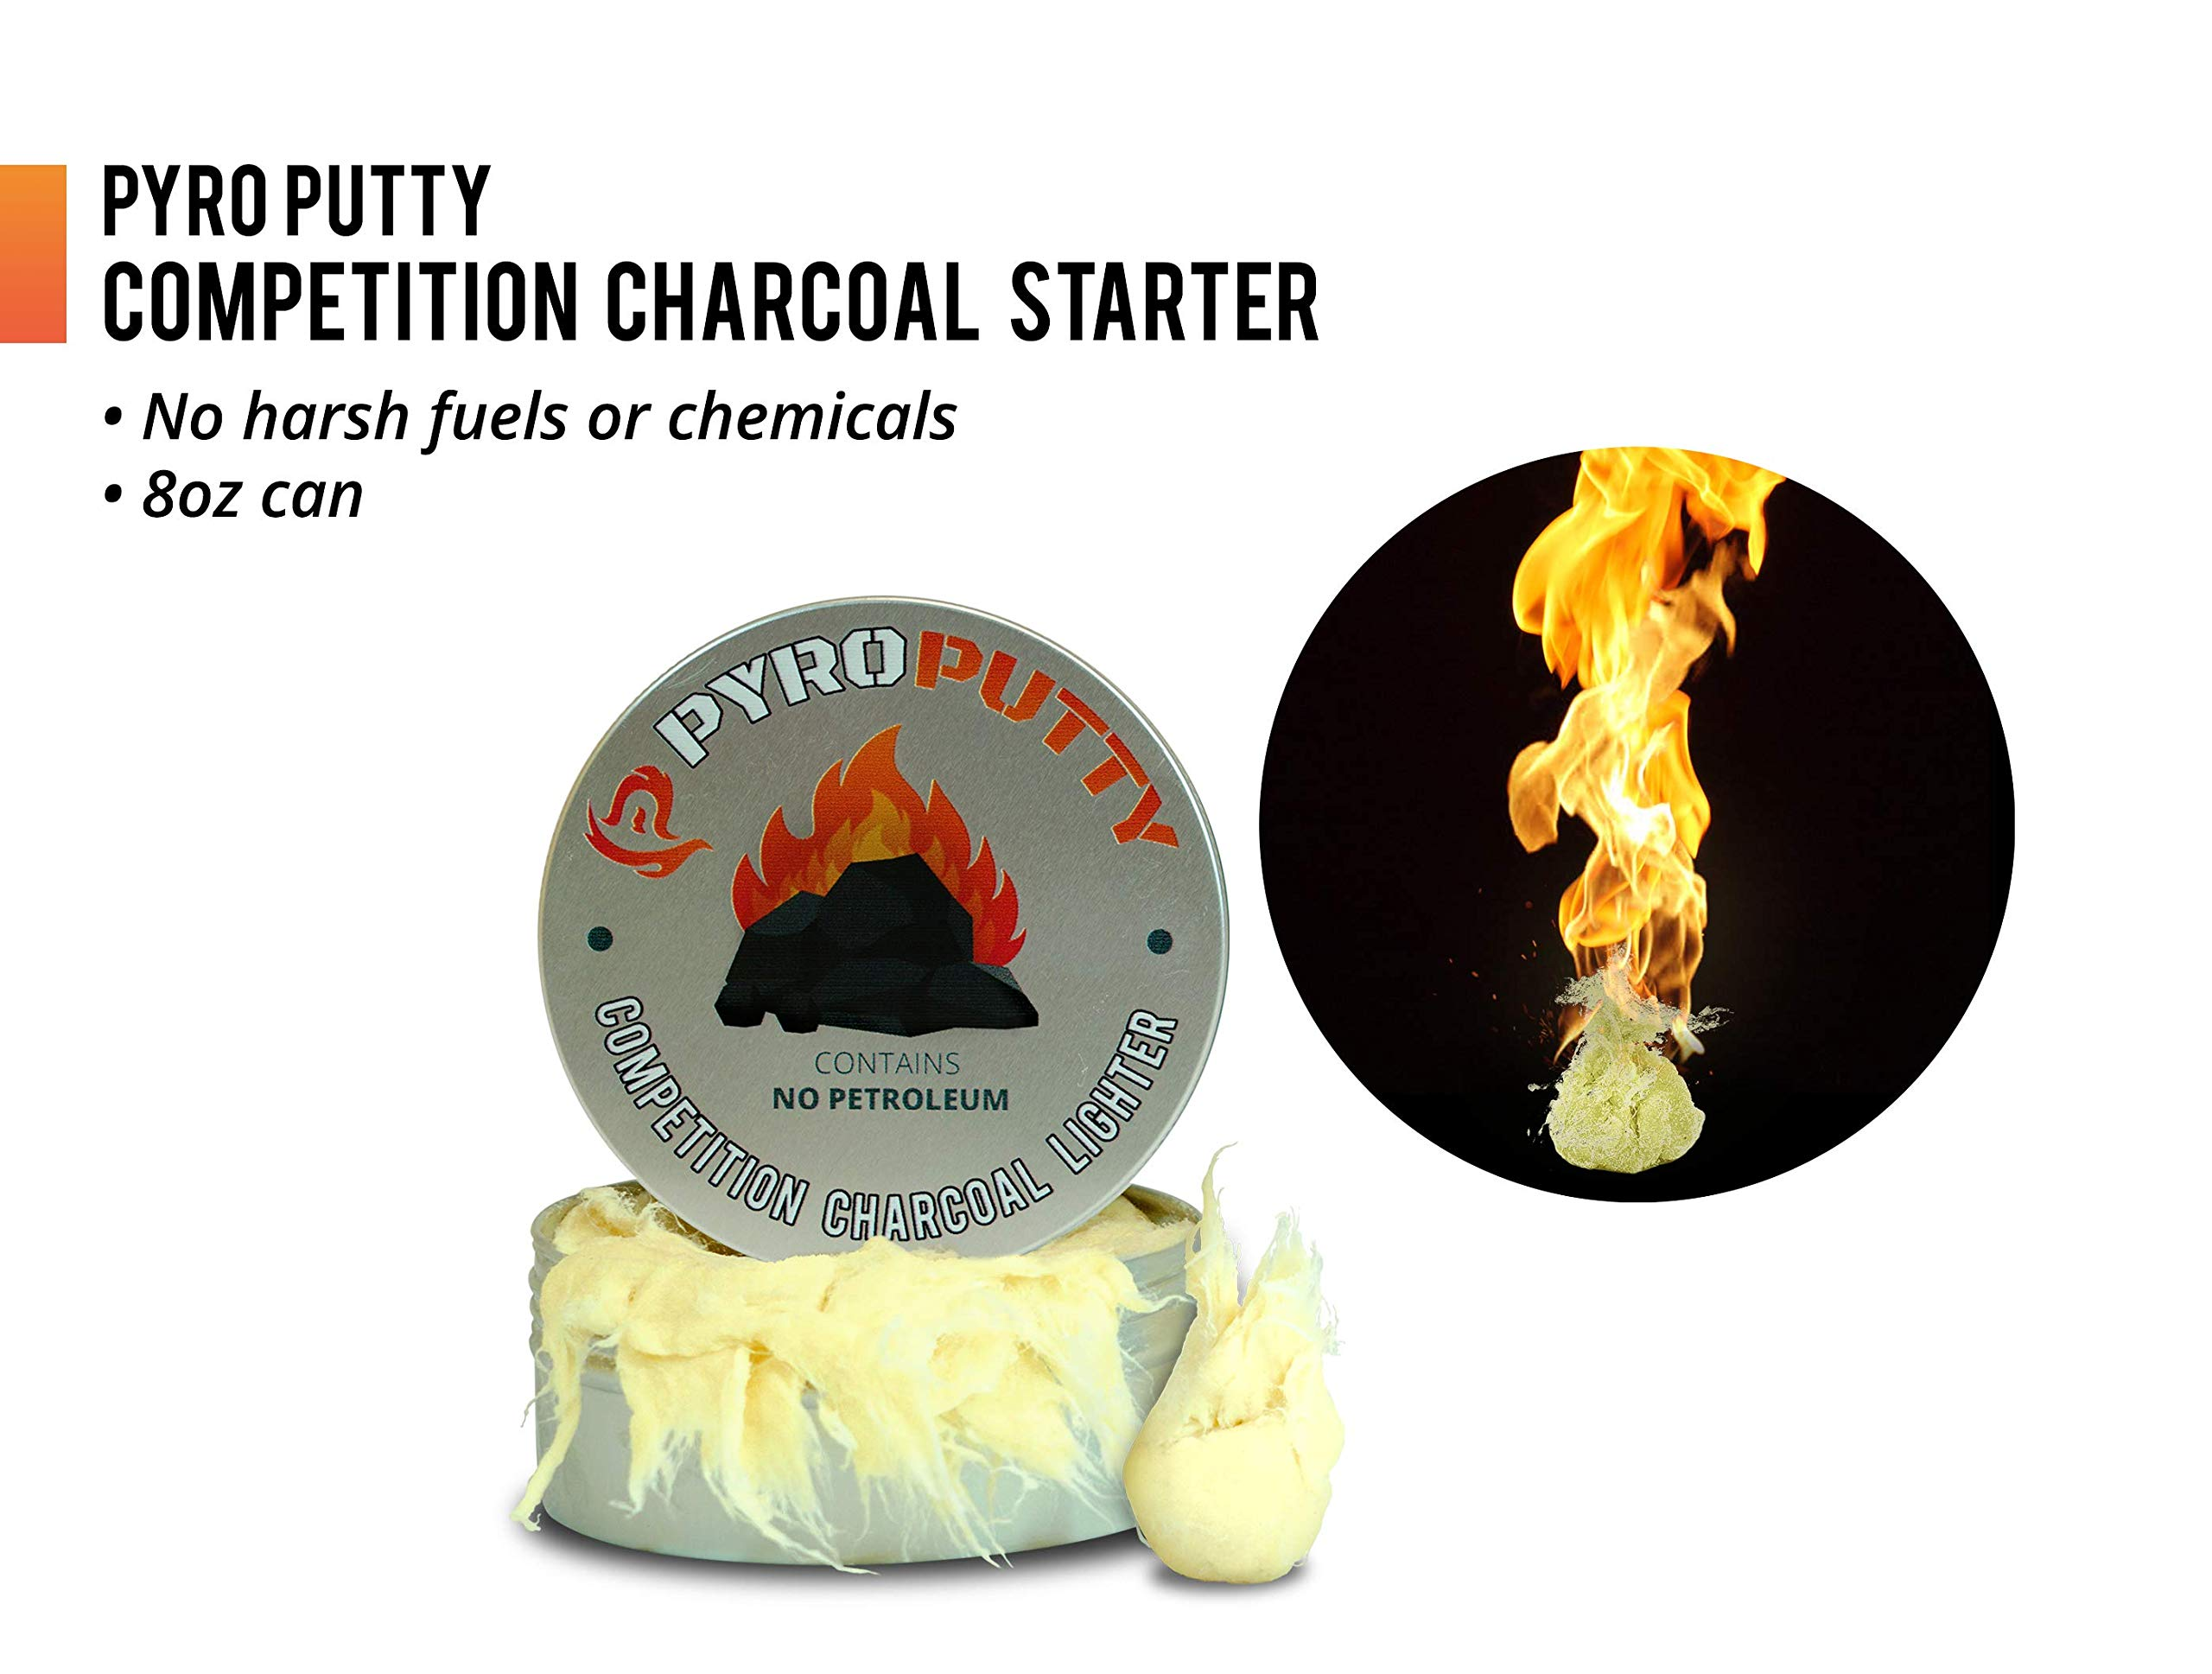 Phone Skope Pyro Putty Competition Charcoal Briquette Fire Starter for Grills, Smokers NO Petroleum ECO Blend Chemical Free Bulk 8oz can! (8 OZ Charcoal Starter)